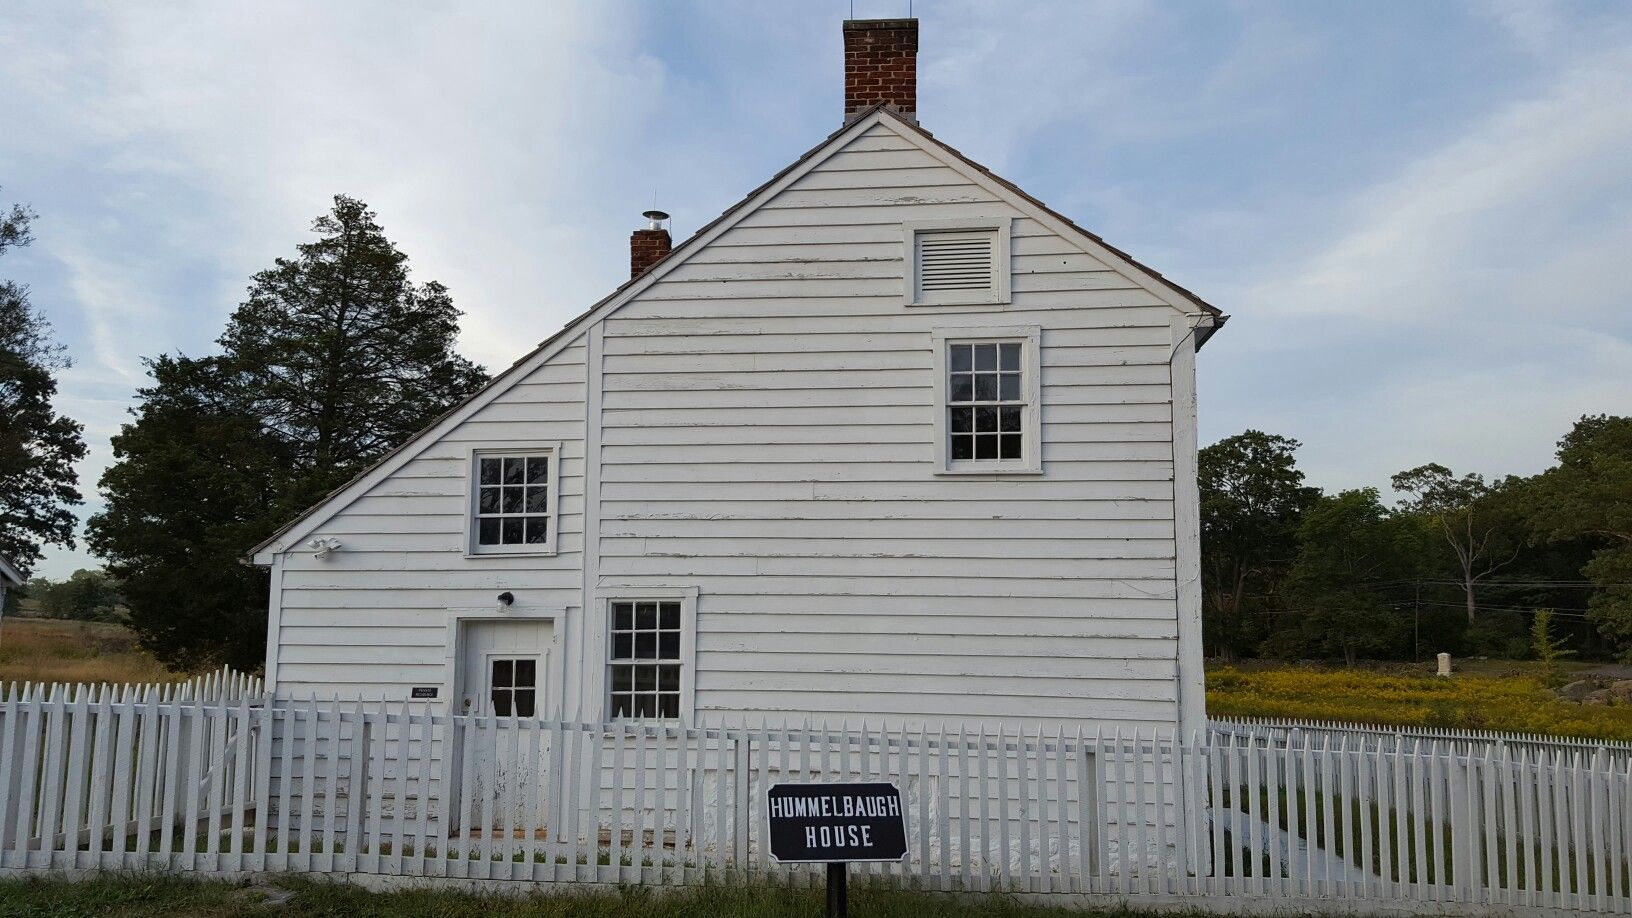 The Hummelbaugh House at the Gettysburg Battlefield